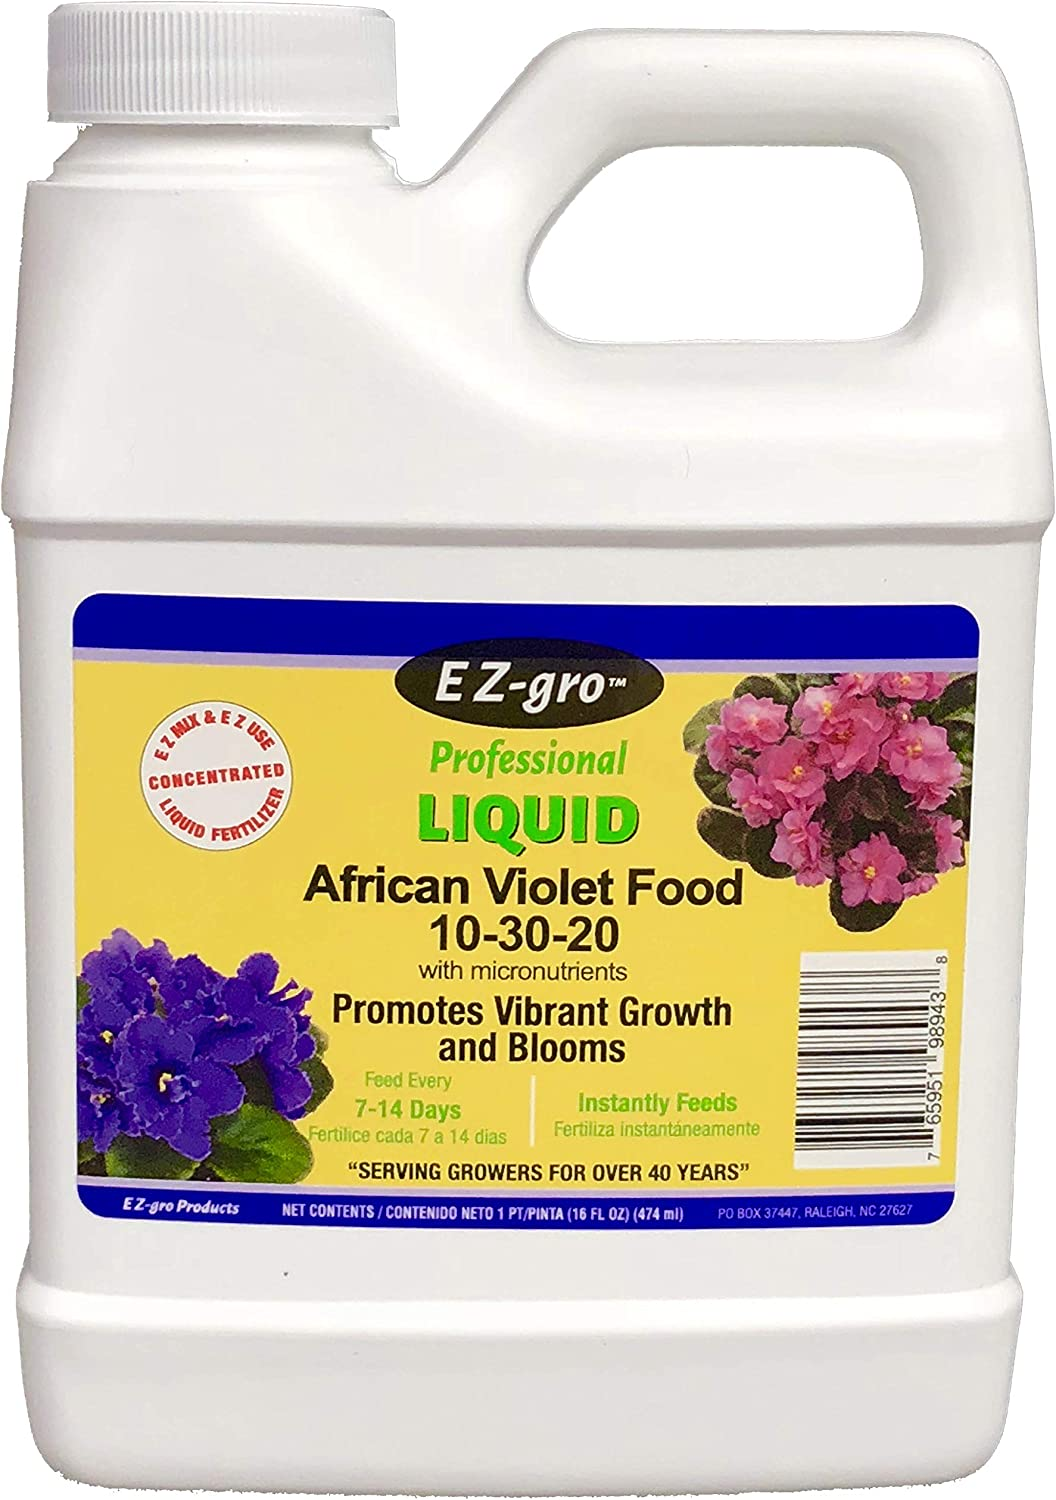 EZ-gro African Violet Food Our African Violet Fertilizer is Specially Formulated to Meet The Unique Needs of African Violets African Violet Plant Food is Urea Free | 16 oz